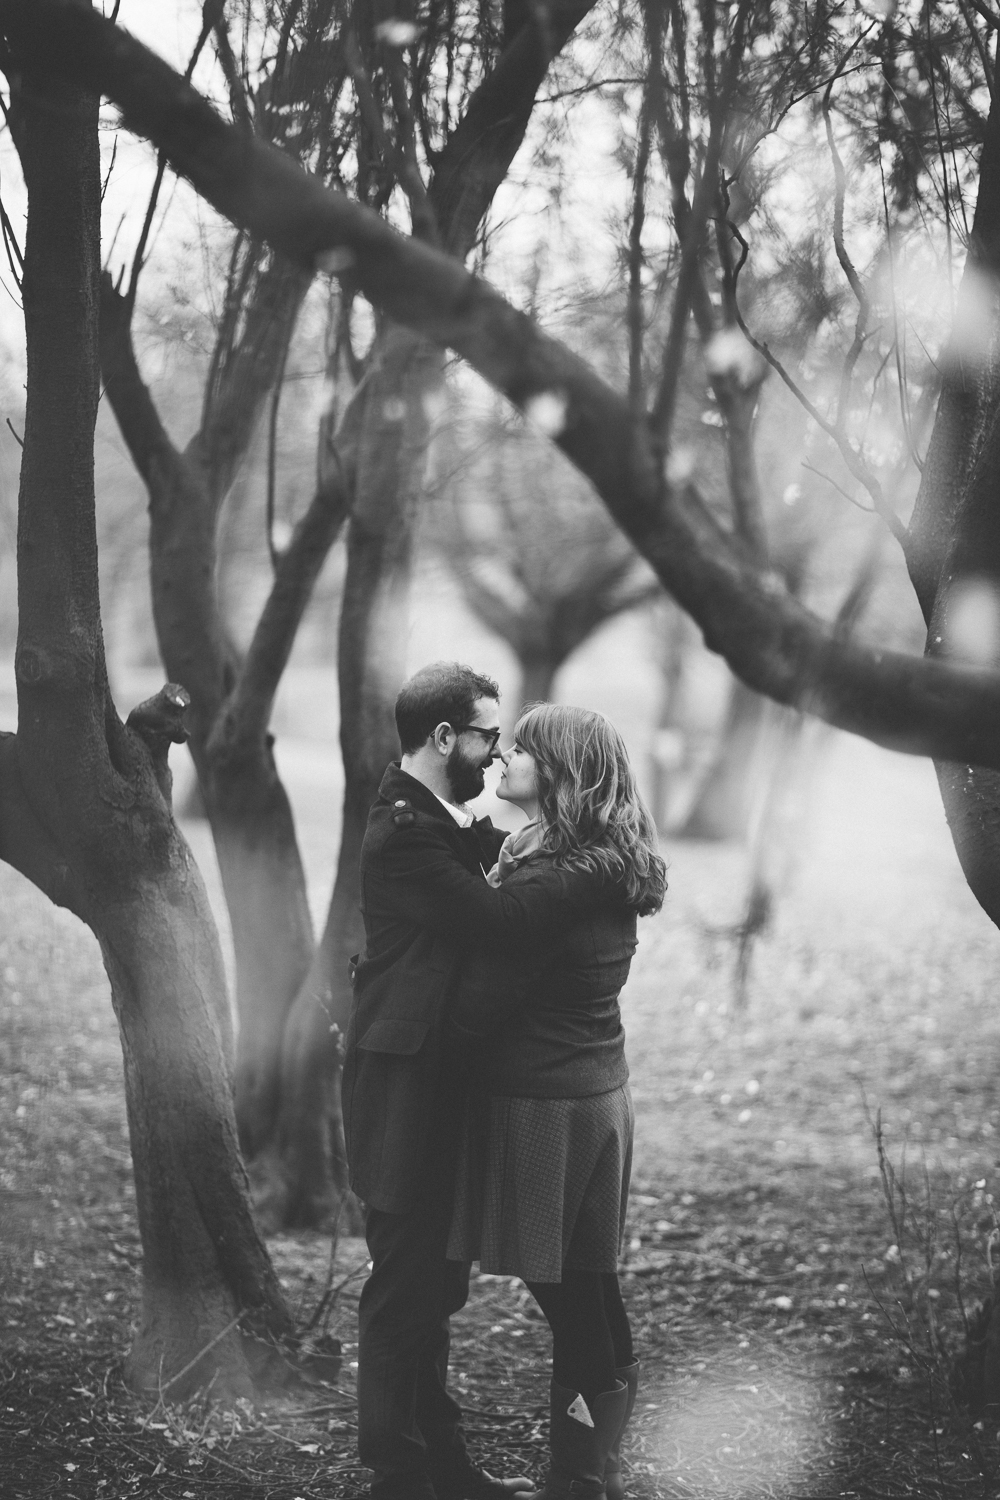 Alexandra Palace Engagement Shoot Creative Artistic Photography London (37 of 42).jpg